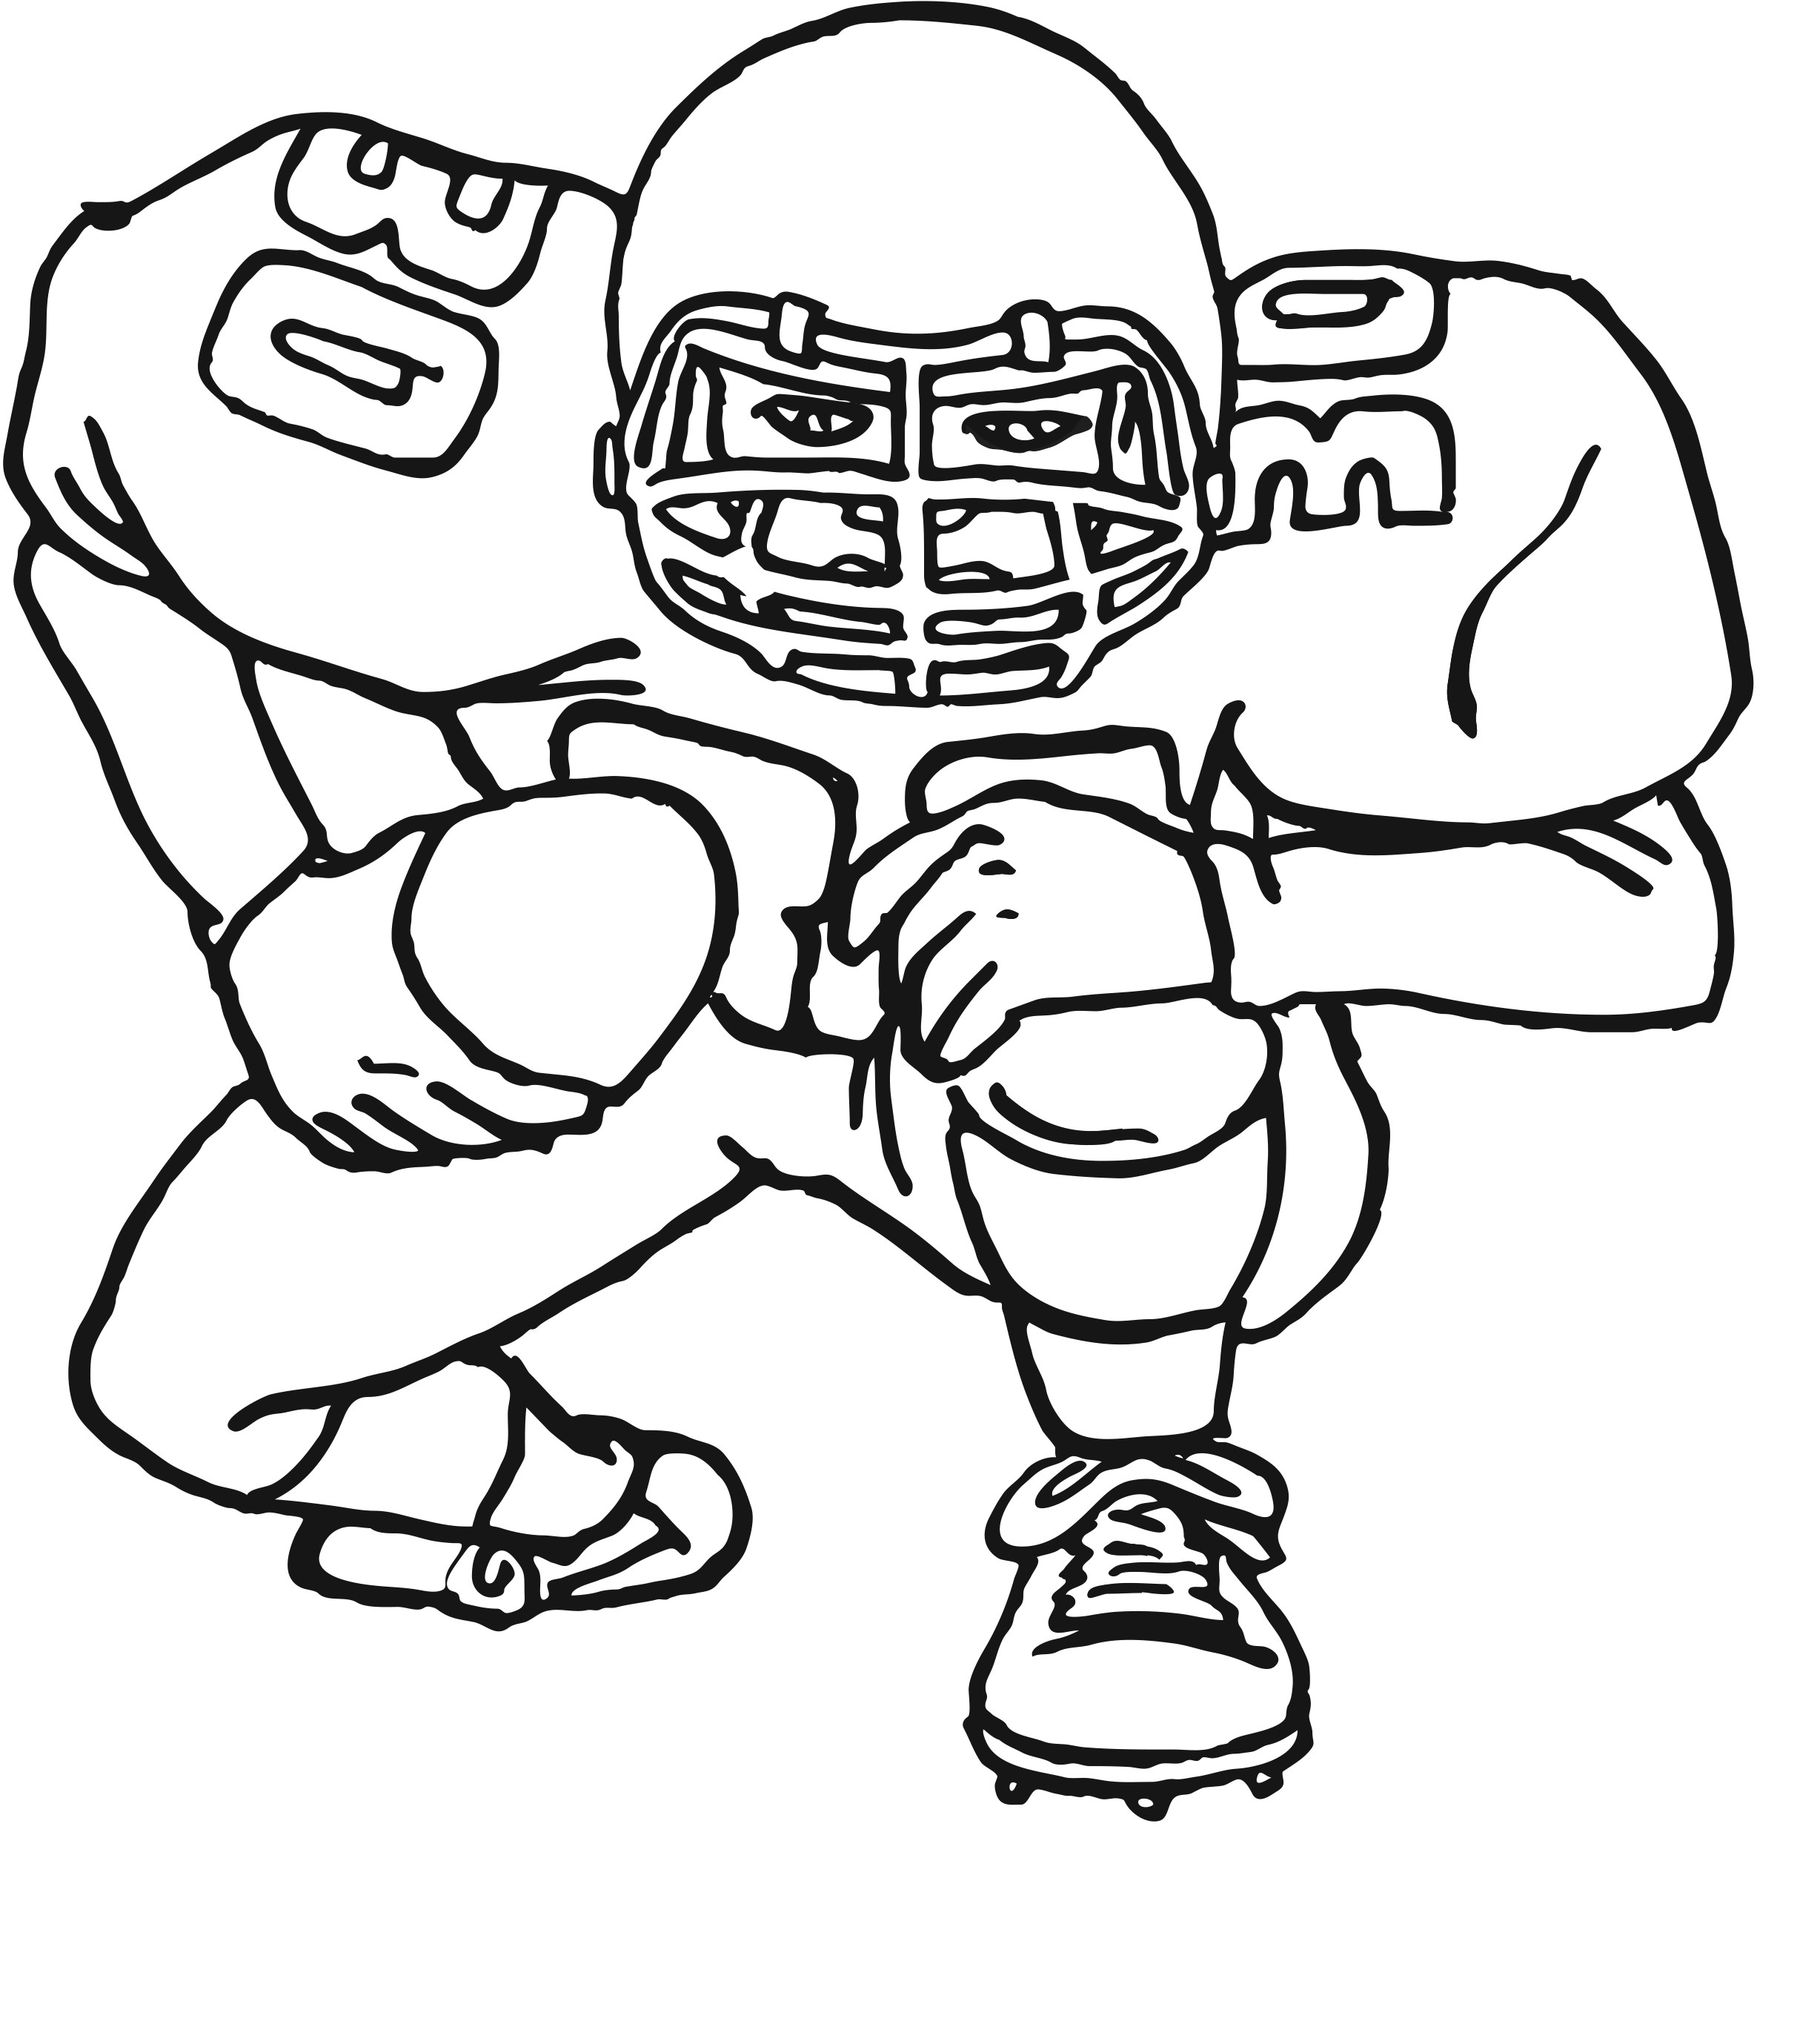 Free Coloring Pages Sports  Free Printable Football Coloring Pages for Kids Best